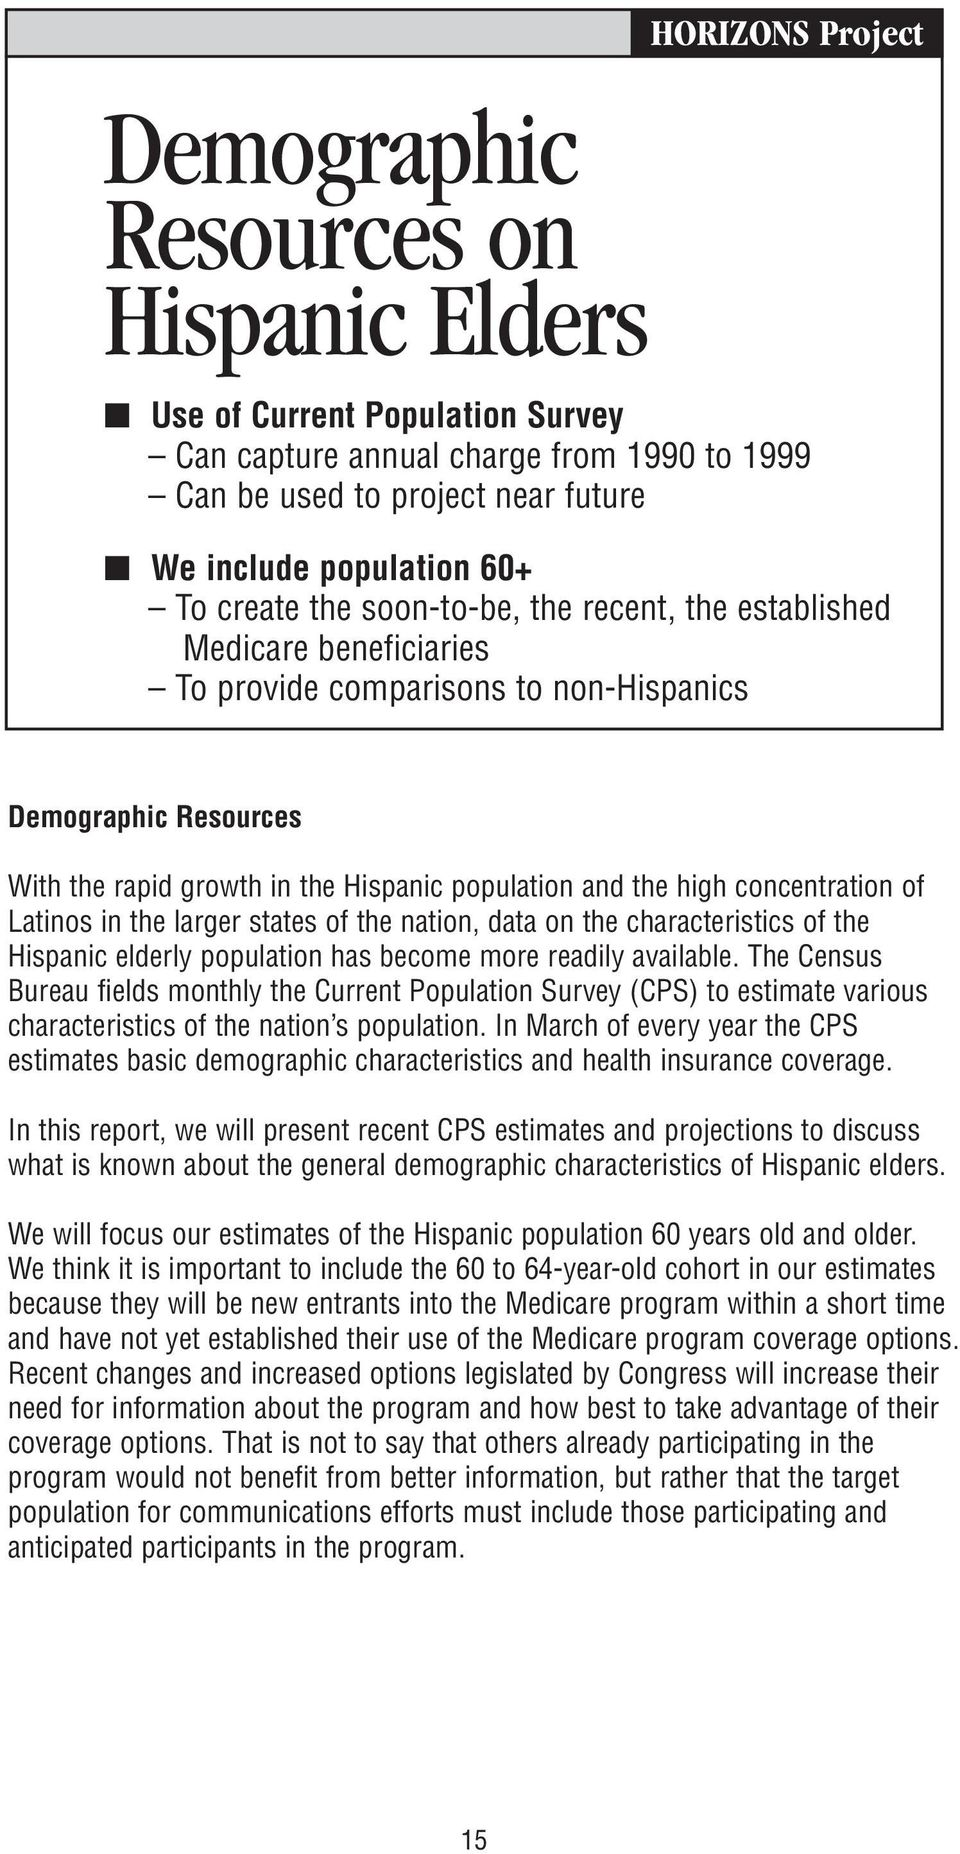 concentration of Latinos in the larger states of the nation, data on the characteristics of the Hispanic elderly population has become more readily available.